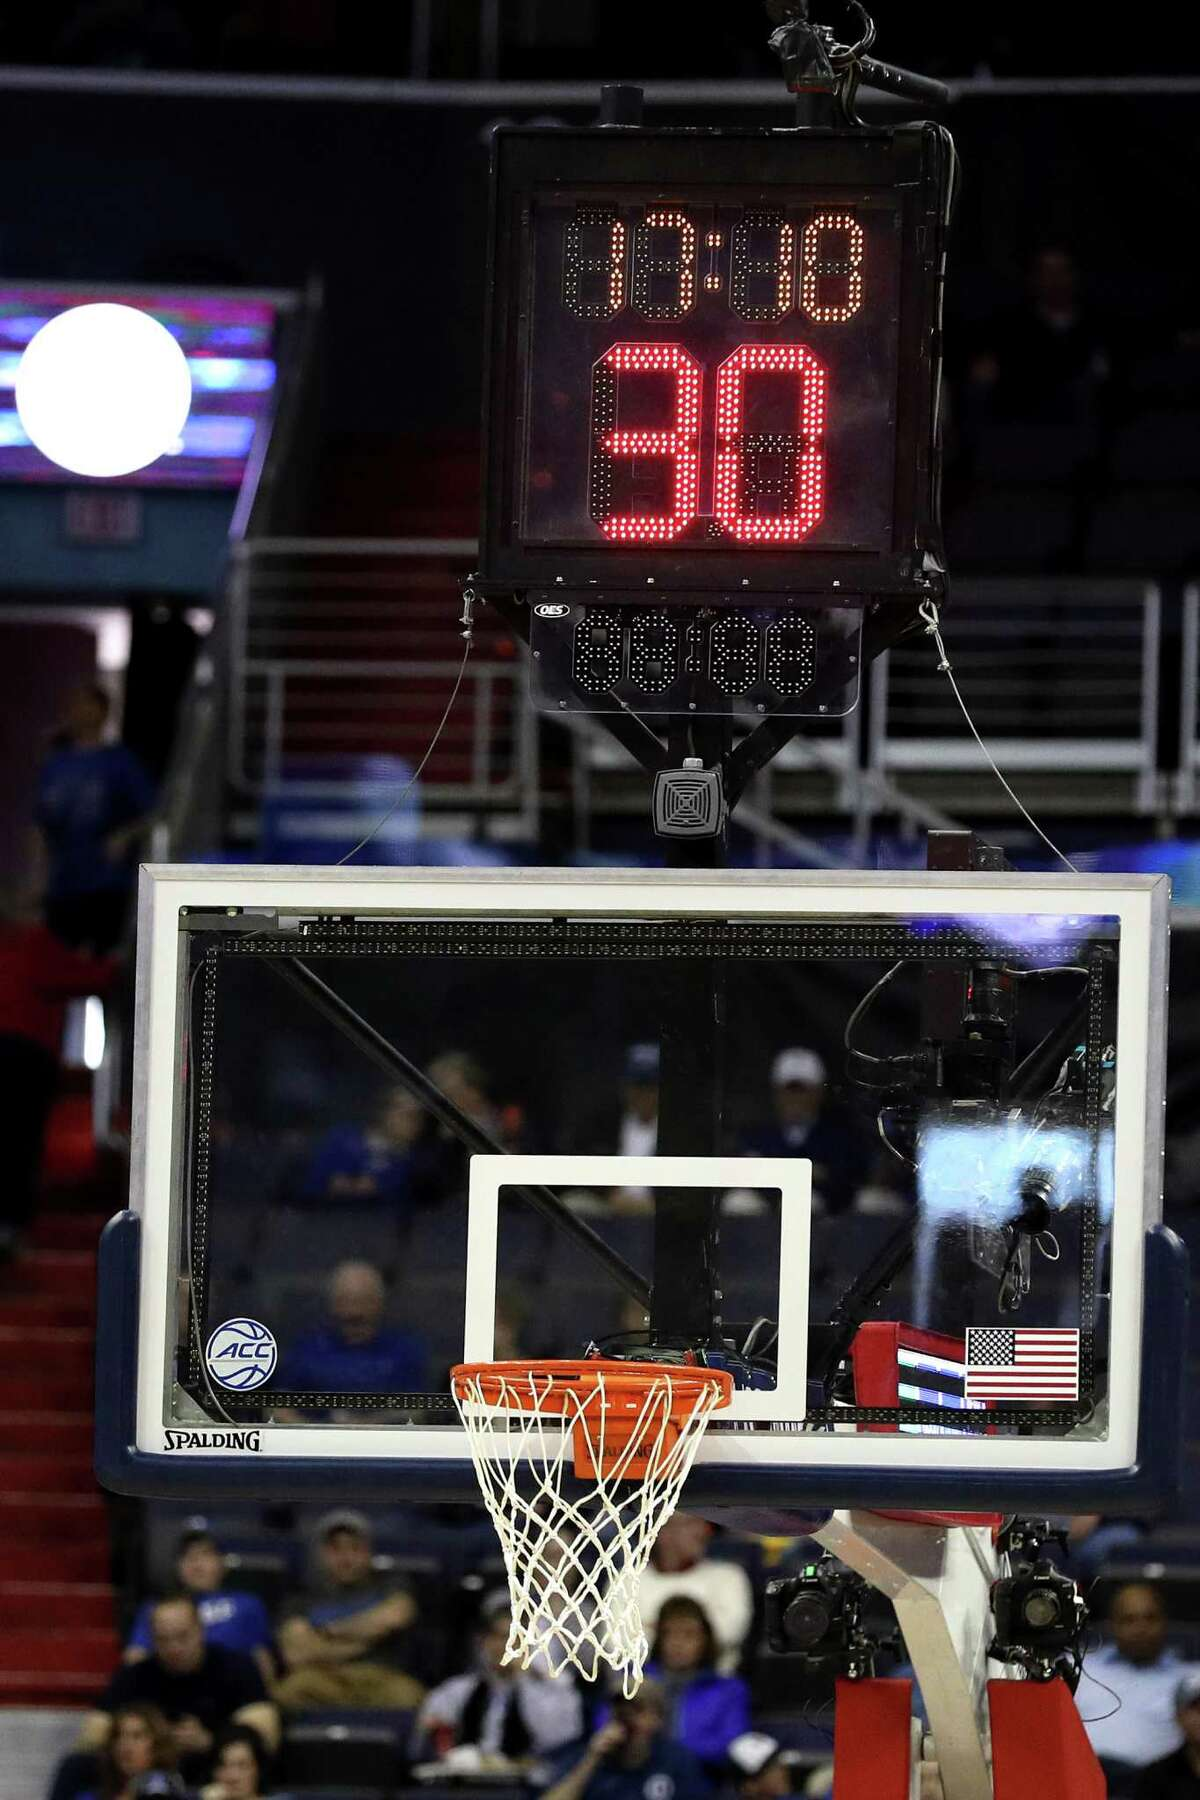 The National Federation of State High School Associations at its April meeting approved a 35-second shot clock for use beginning in the 2022-23 season.